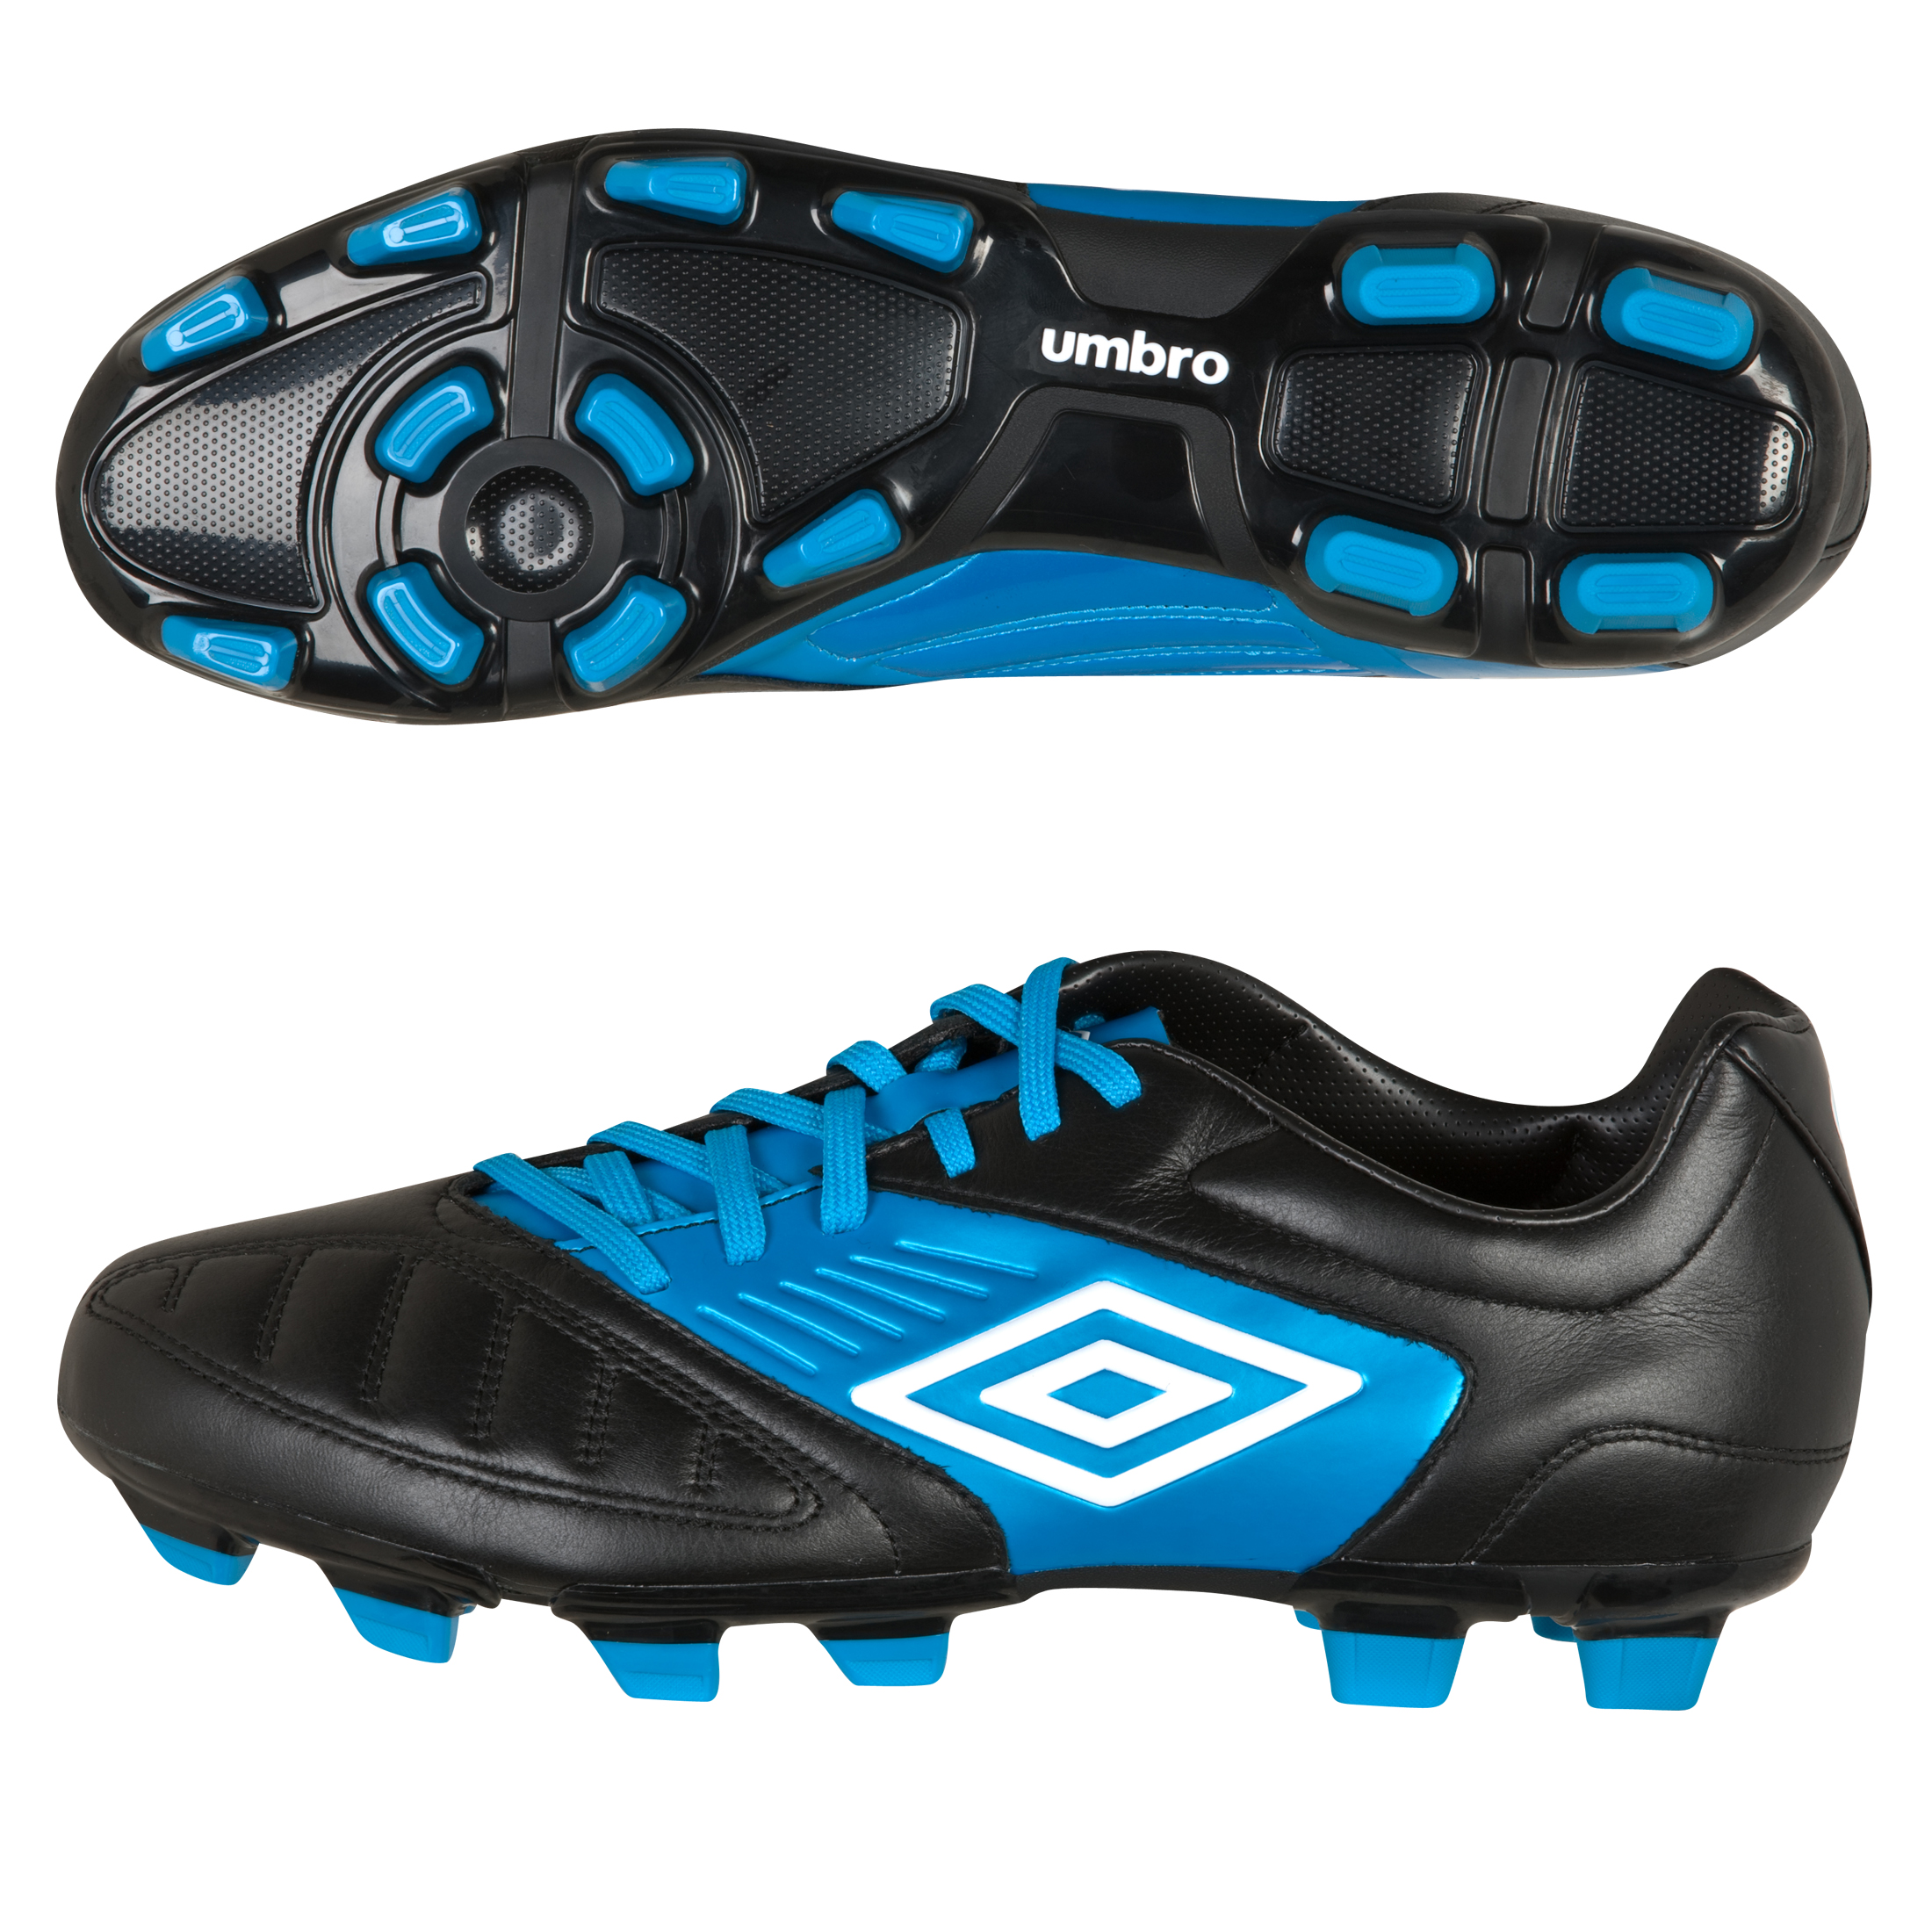 Umbro Geometra Premier Firm Ground Football Boots - Black/White/Vivid Blue - Kids